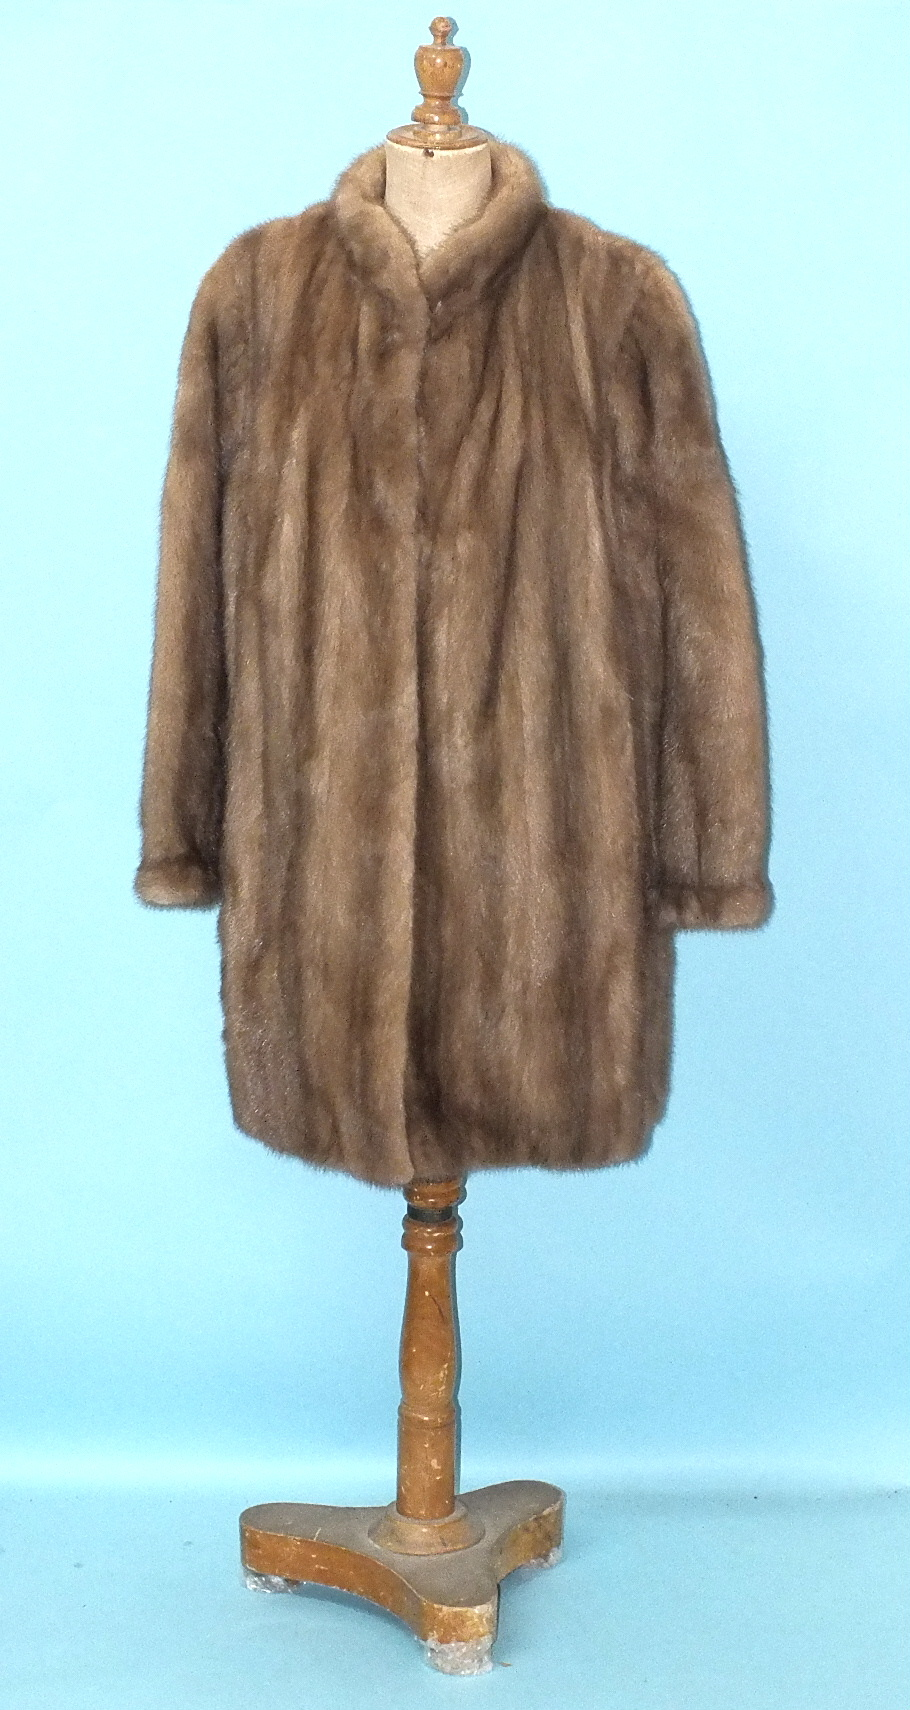 Lot 230 - A Hickleys labelled light brown mink coat with stand-up collar and wide sleeves gathered at the